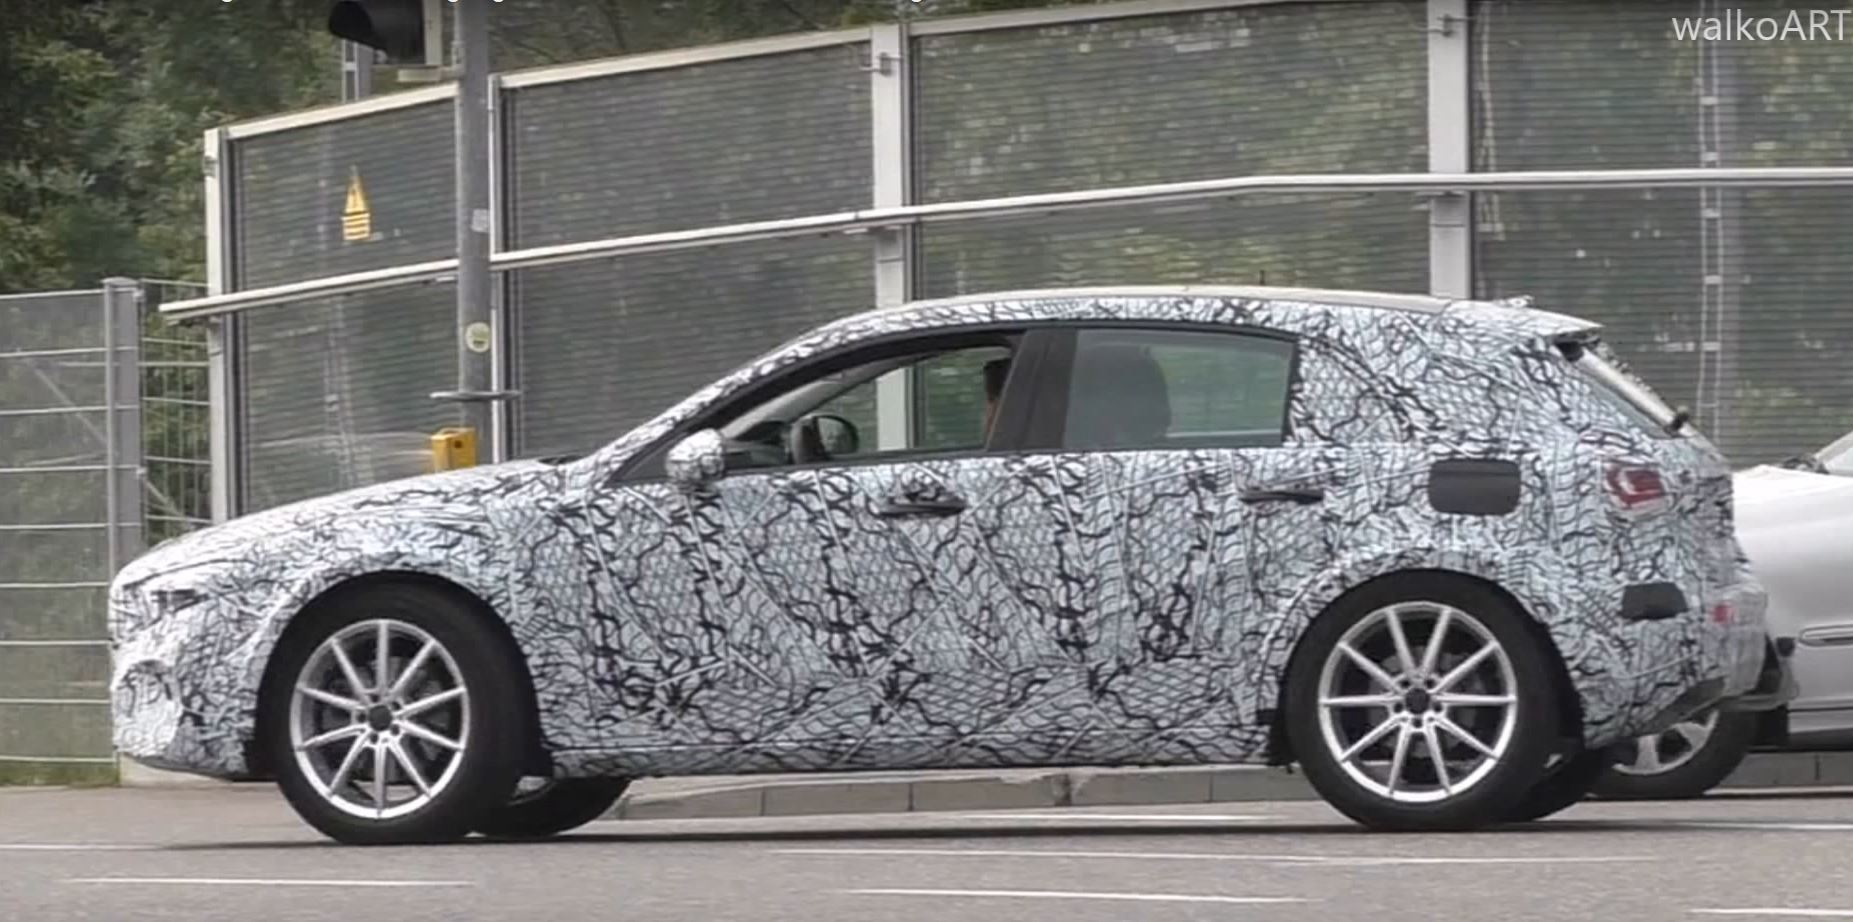 2019 mercedes gla spied with less camo  looks like a-class on stilts